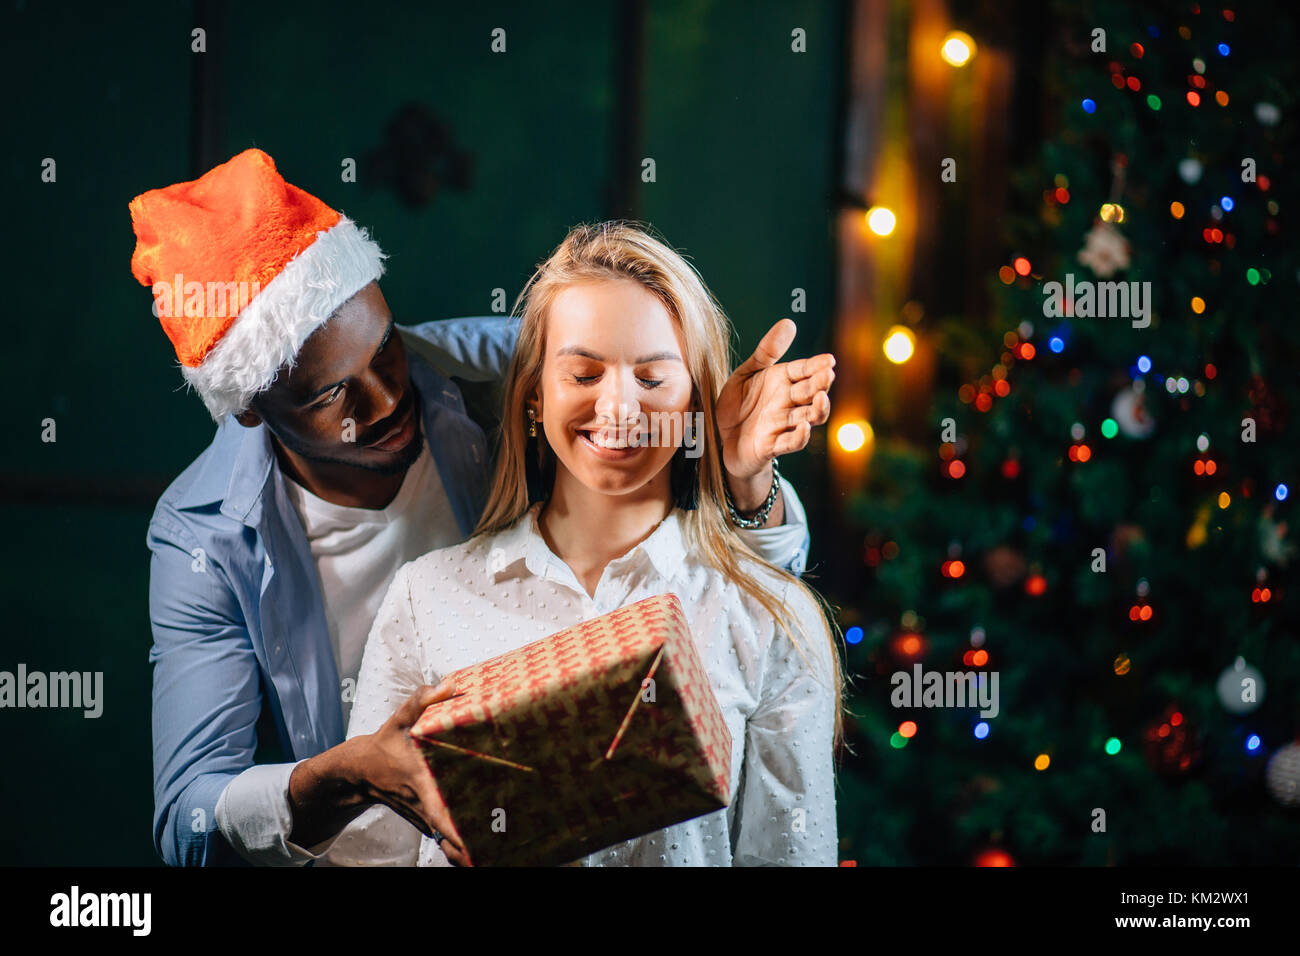 what should i buy my girlfriend for christmas